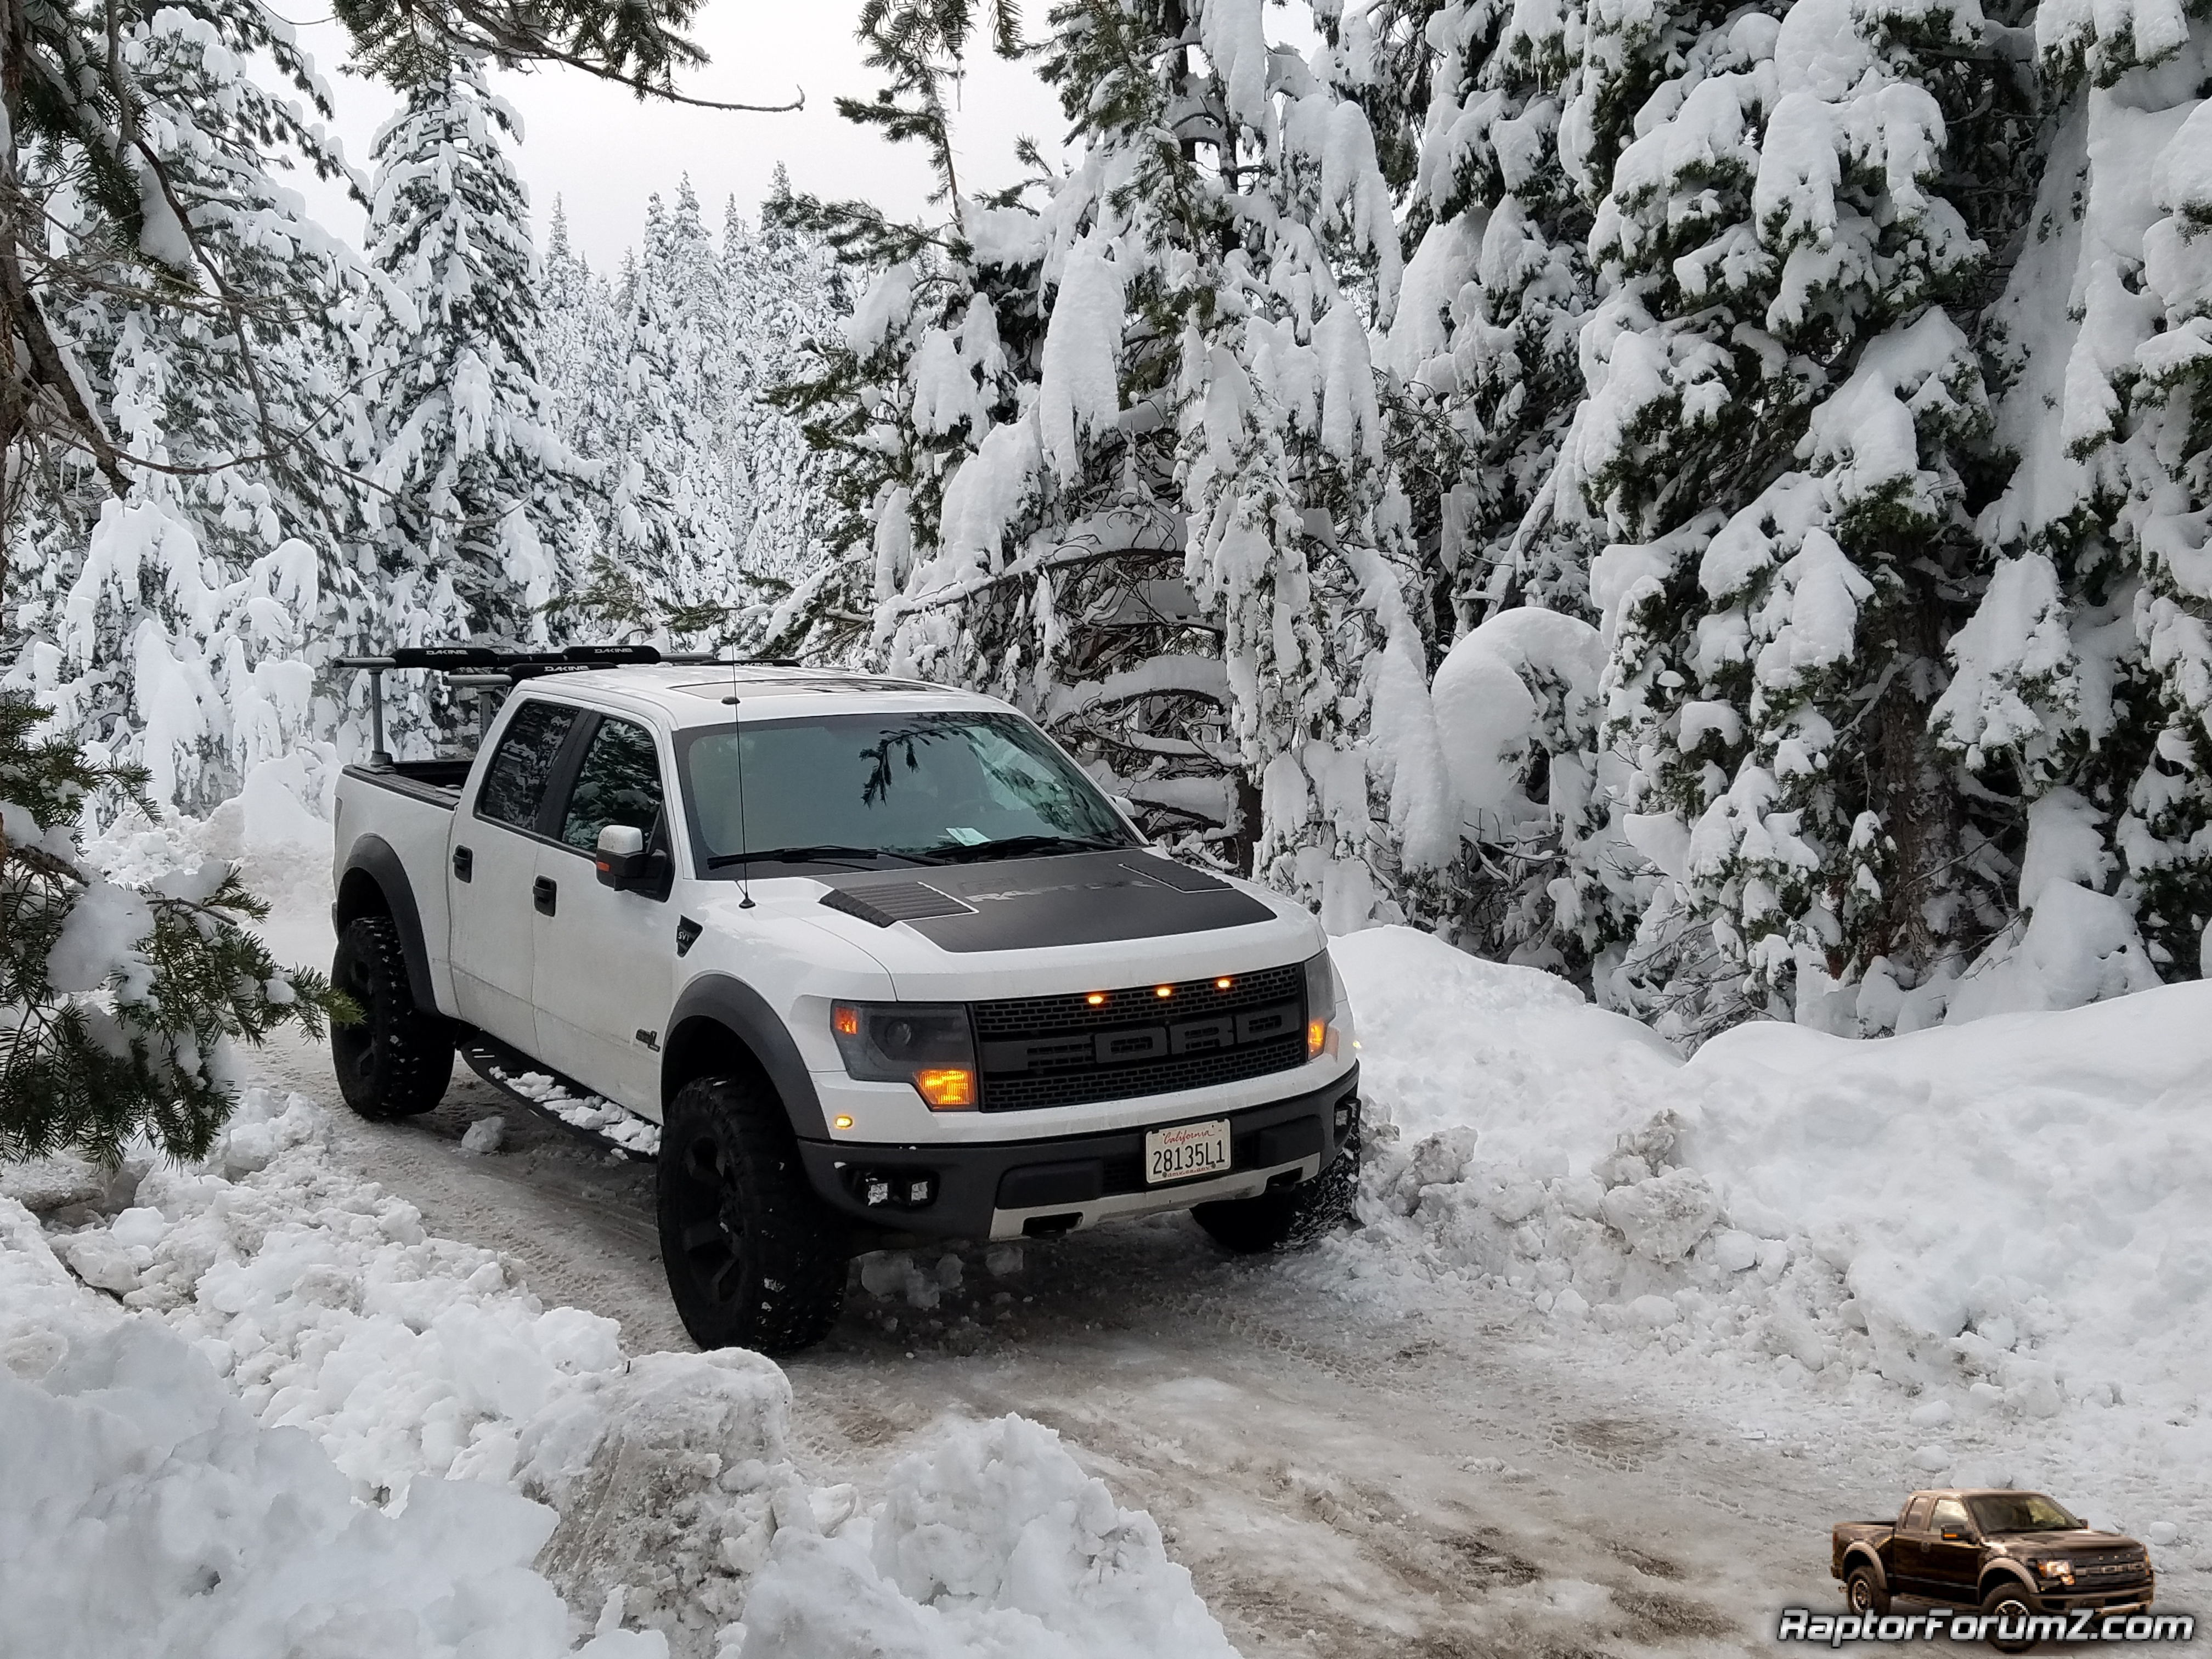 Snow Raptor 2014 With Perch Mod And Nitto Trail